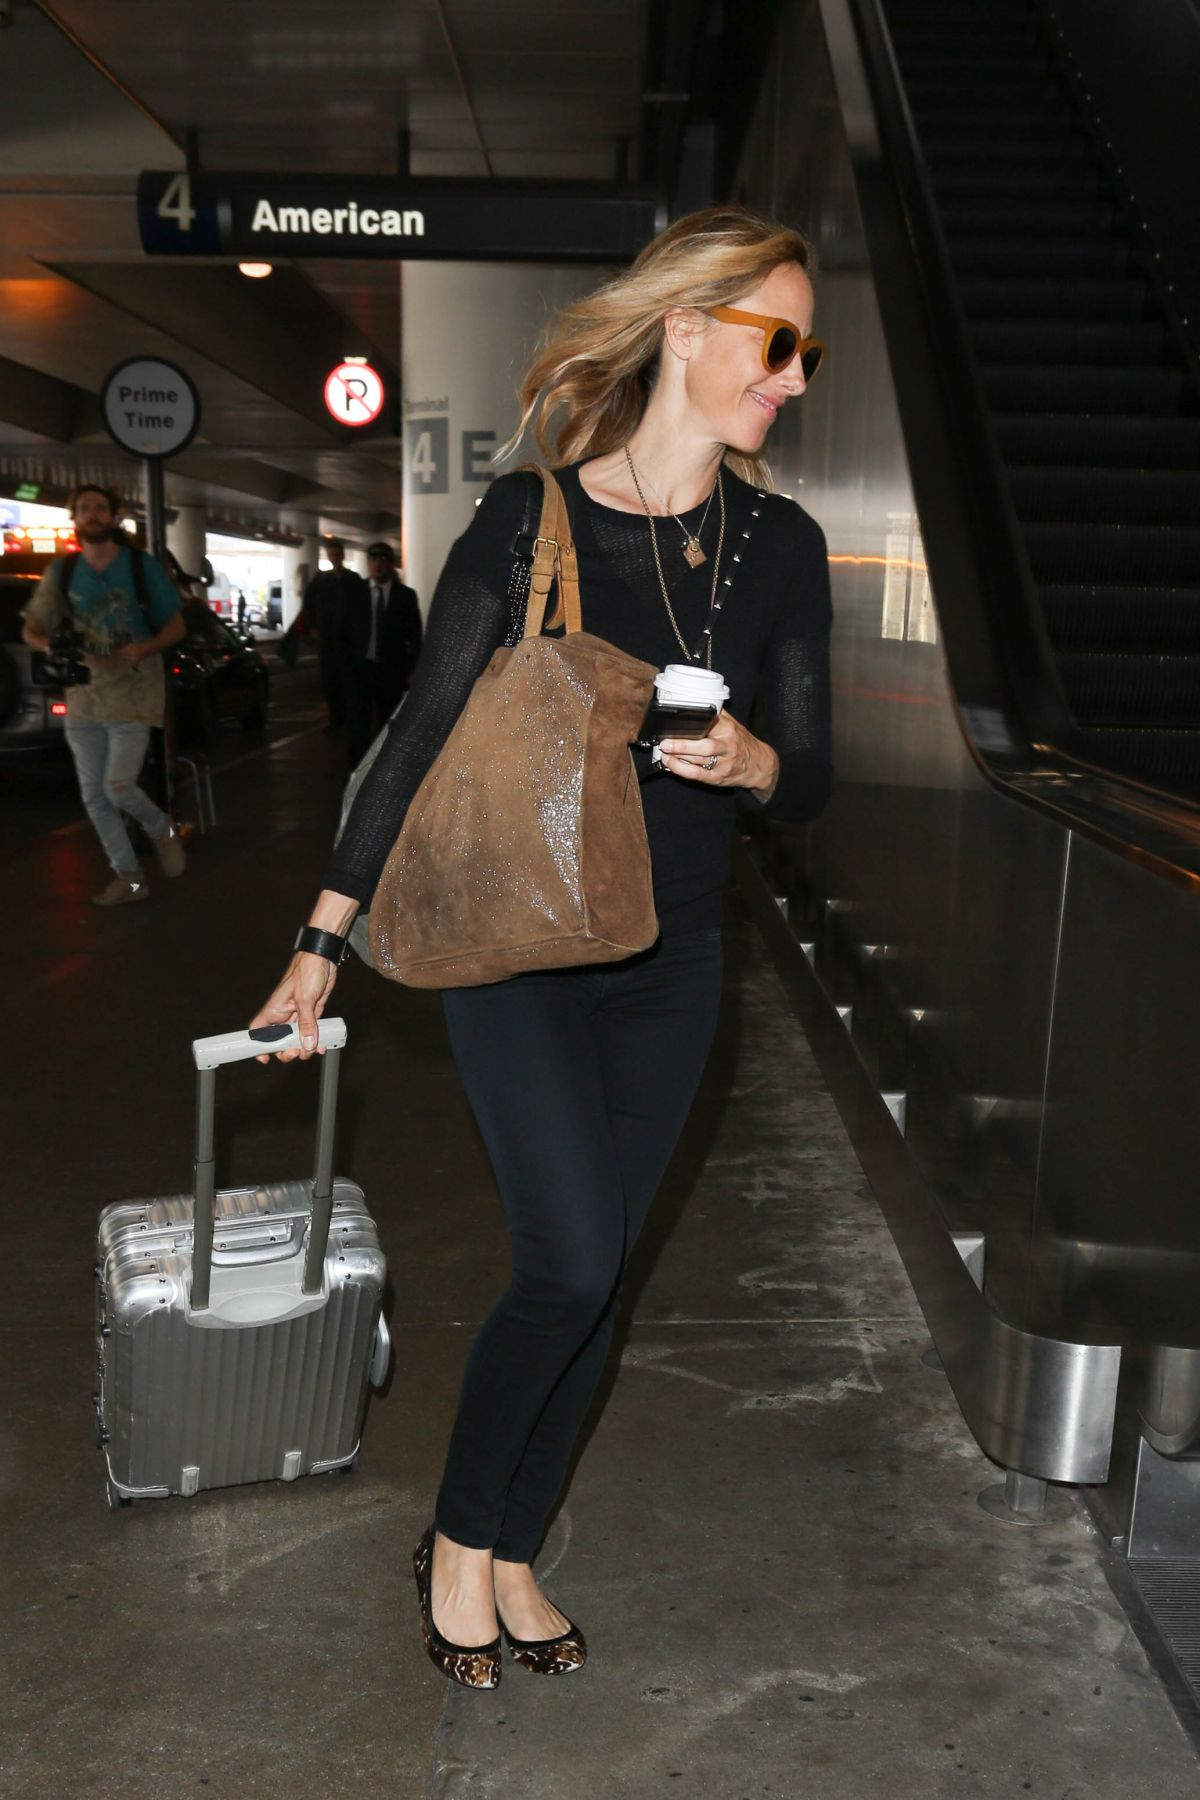 KIM RAVER at Los Angeles International Airport 05/03/2017